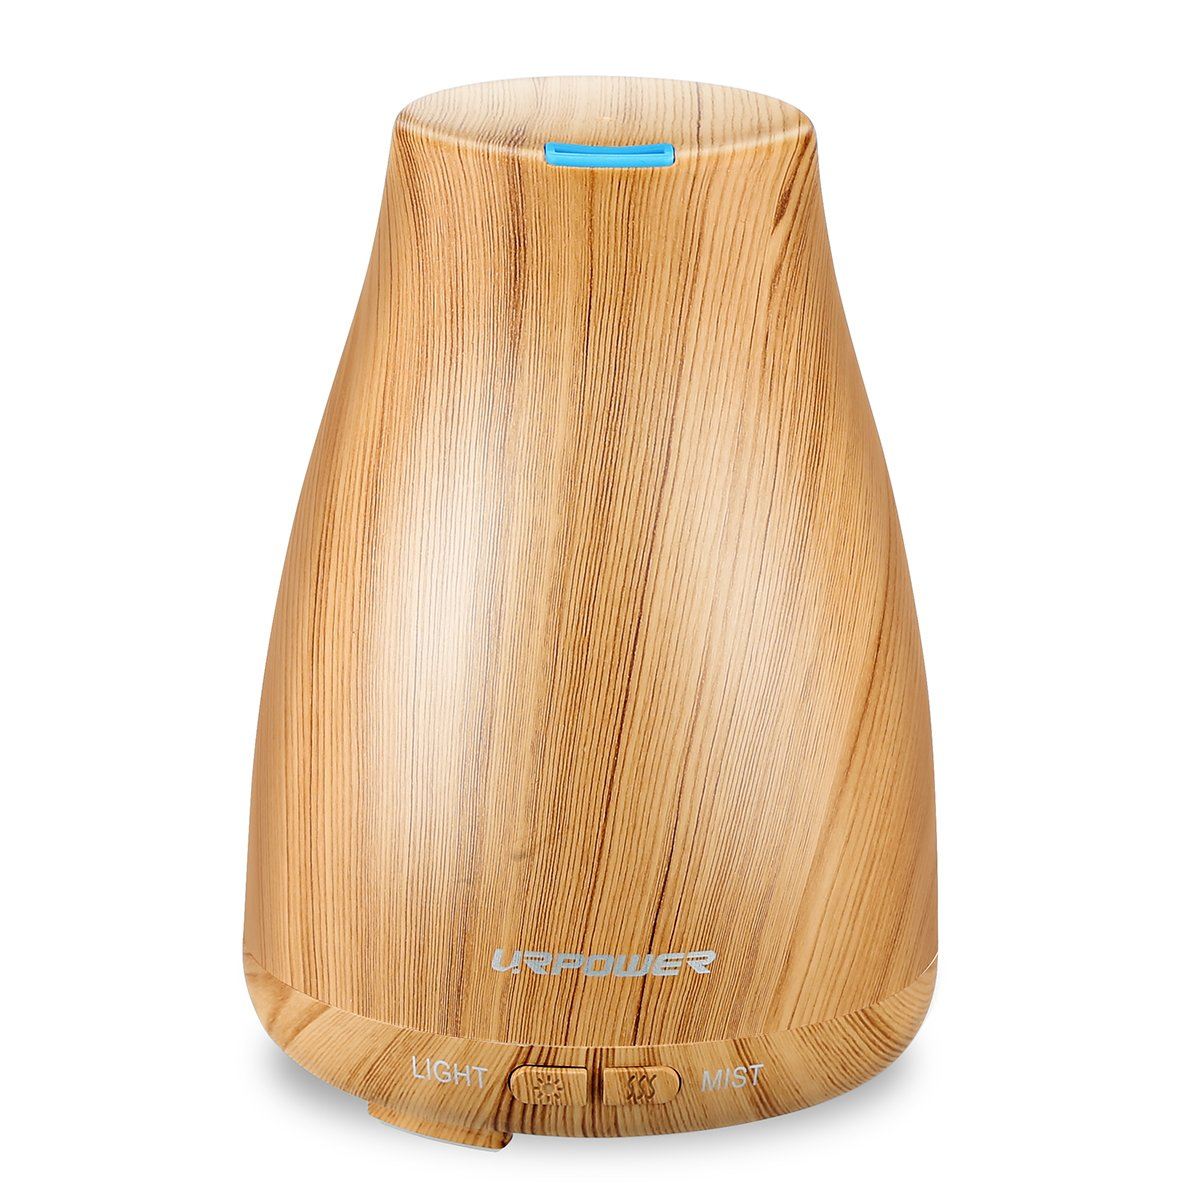 URPOWER 2nd Version Essential Oil Diffuser Aroma Essential Oil Cool Mist Humidifier with Adjustable Mist Mode,Waterless Auto Shut-off and 7 Color LED Lights Changing for Home